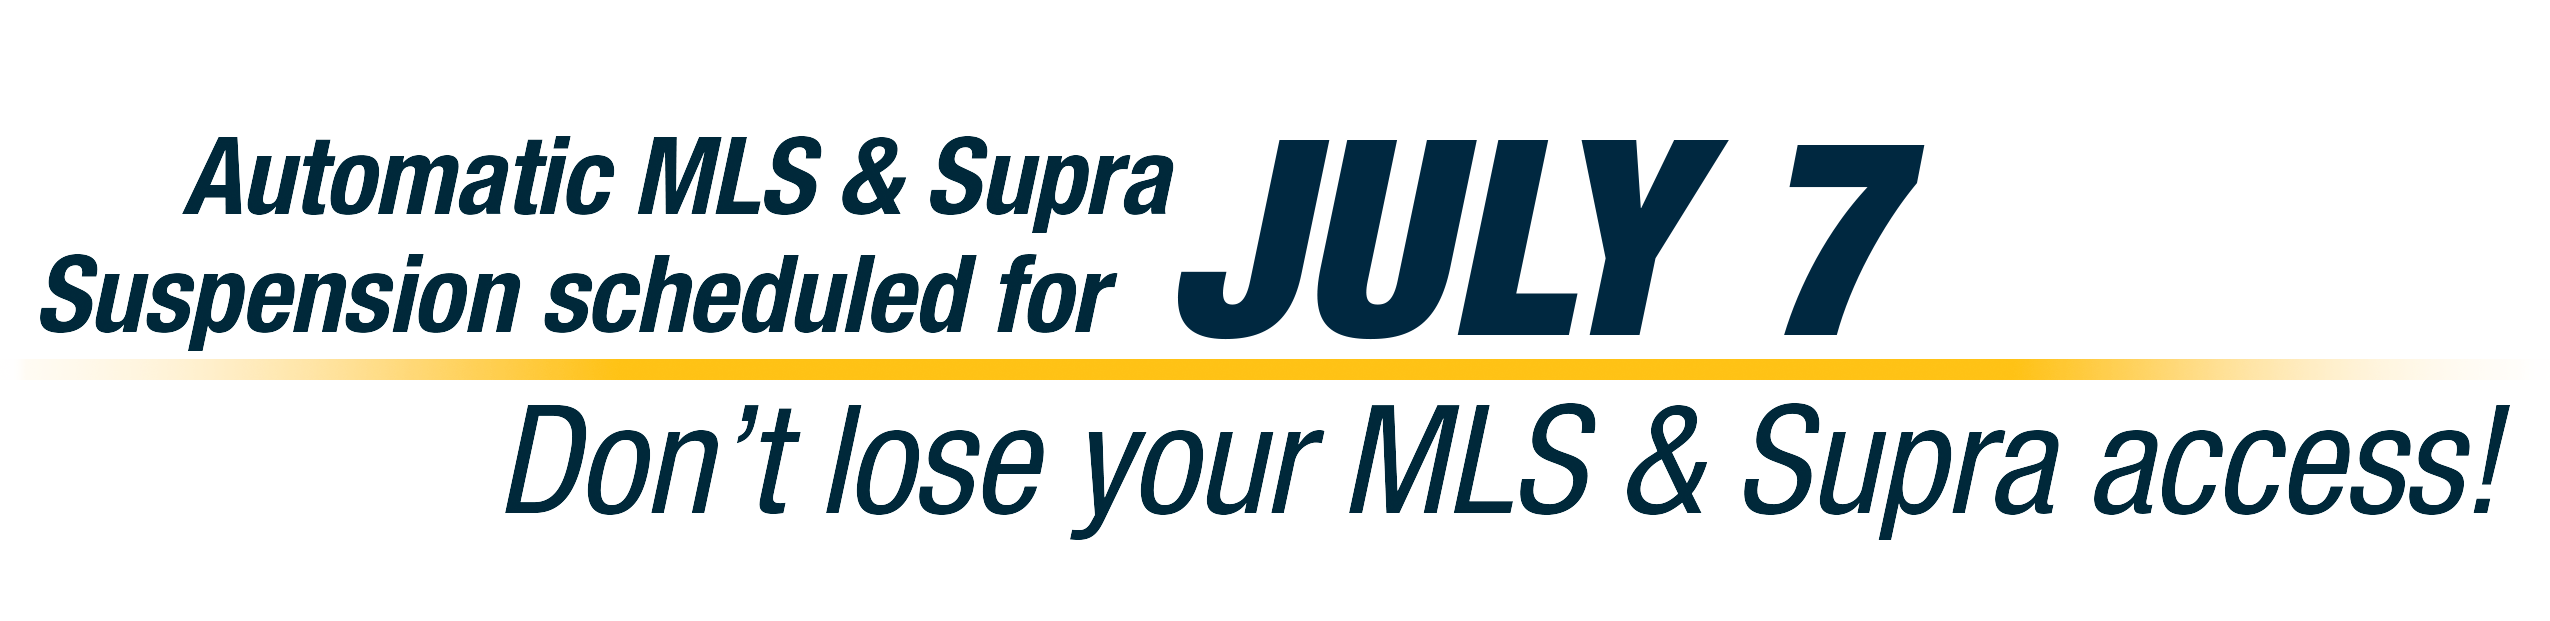 Automatic MLS & Supra Suspension scheduled for August 5! Don't lose your MLS & Supra access!